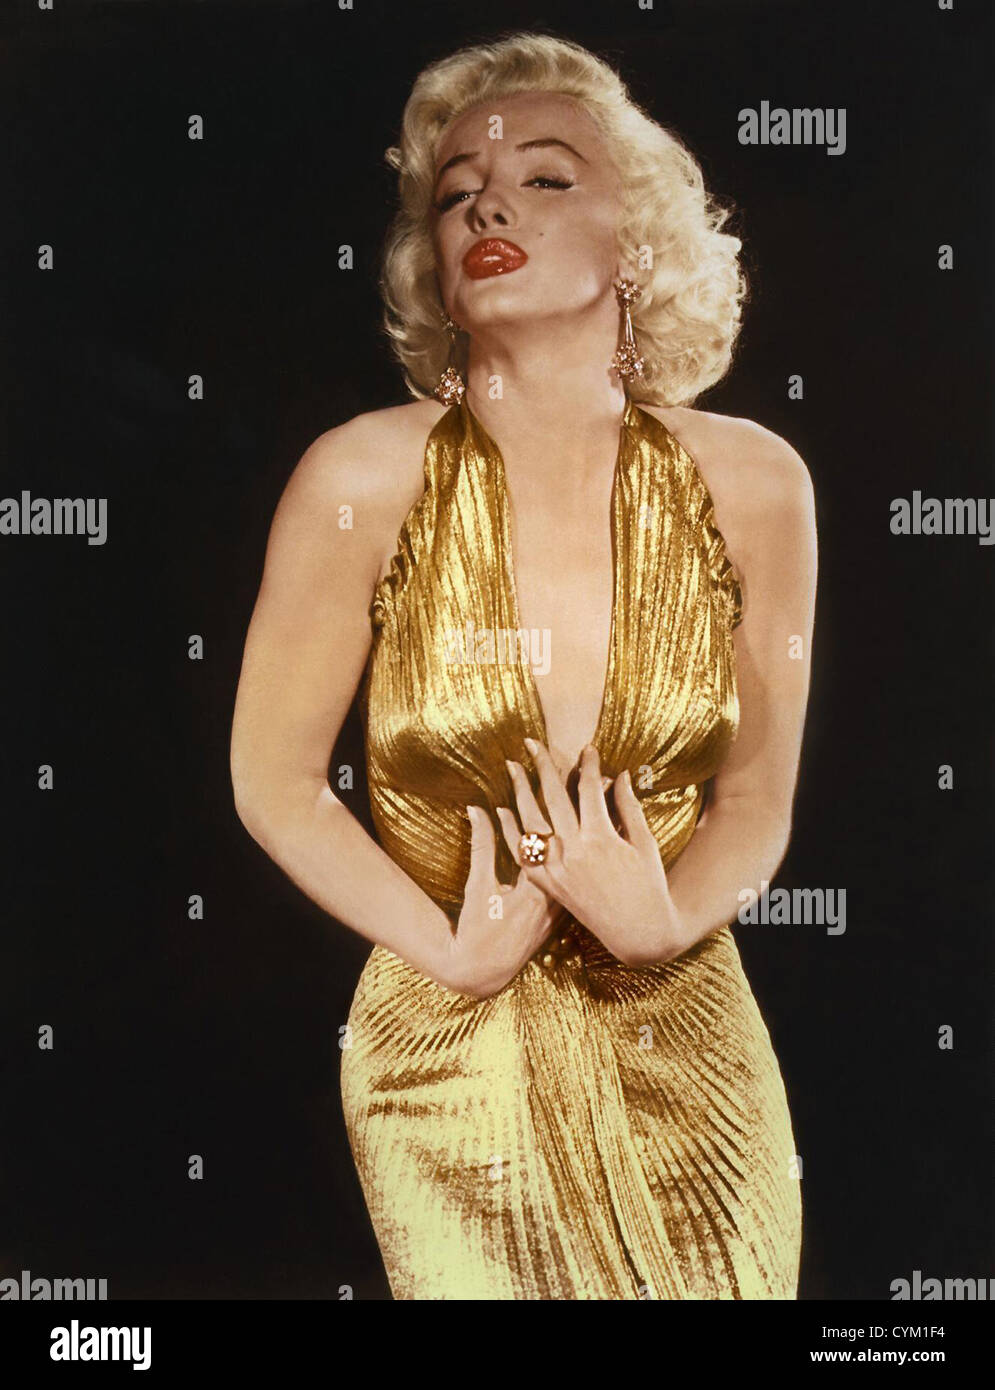 Marilyn Monroe Gentlemen Prefer Blondes 1953 Director: Howard Hawks - Stock Image